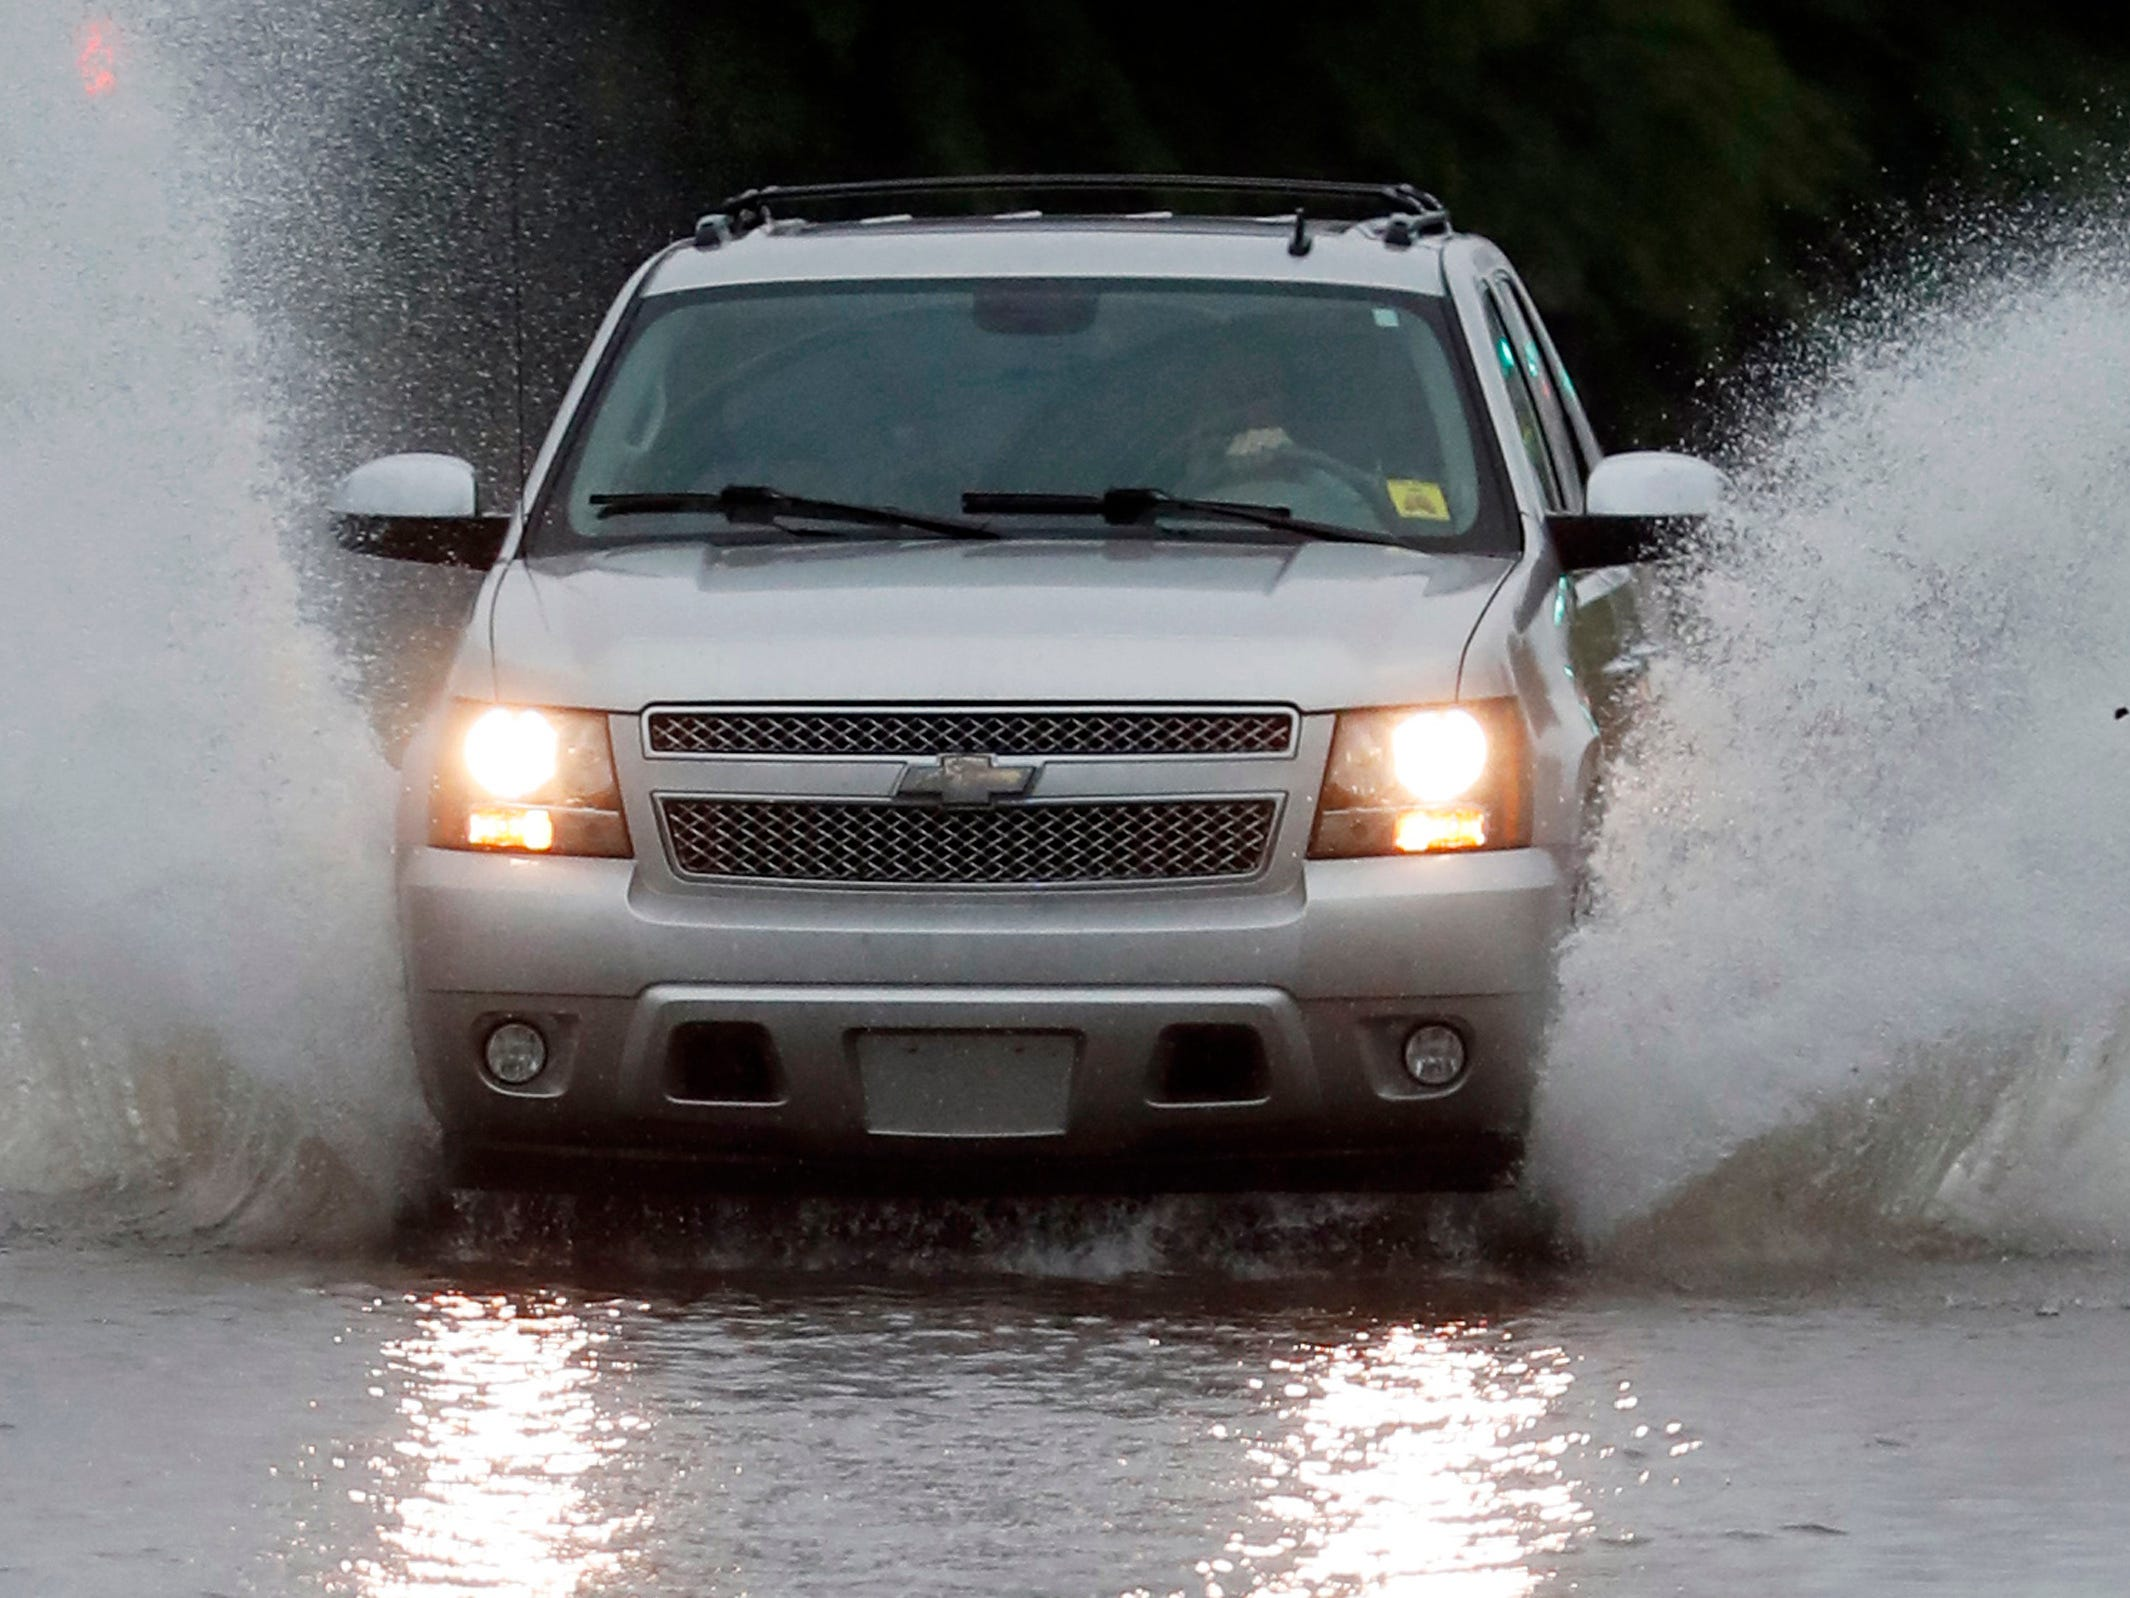 A vehicle drives through floodwaters in downtown Jackson, Miss., Thursday, May 9, 2019, as strong winds, tornado warnings and substantial rains added to the flash flooding throughout Mississippi.